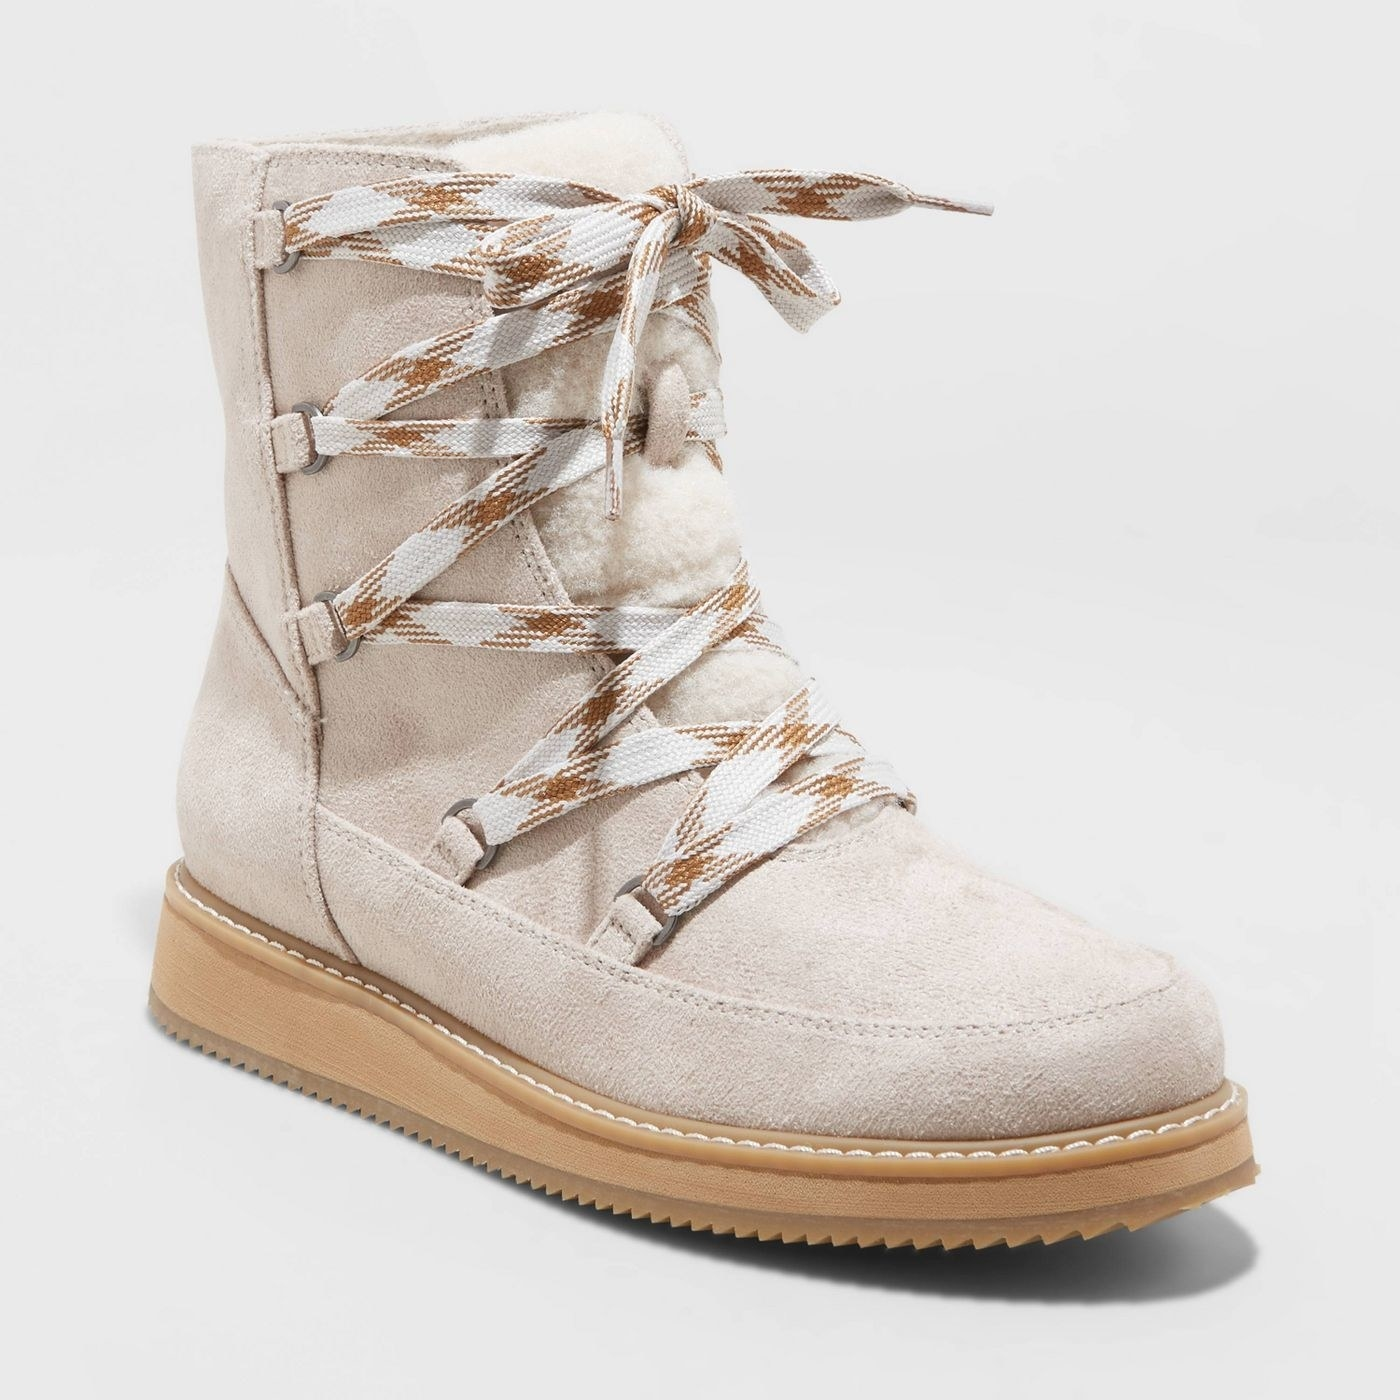 Tan lace-up hiking boots